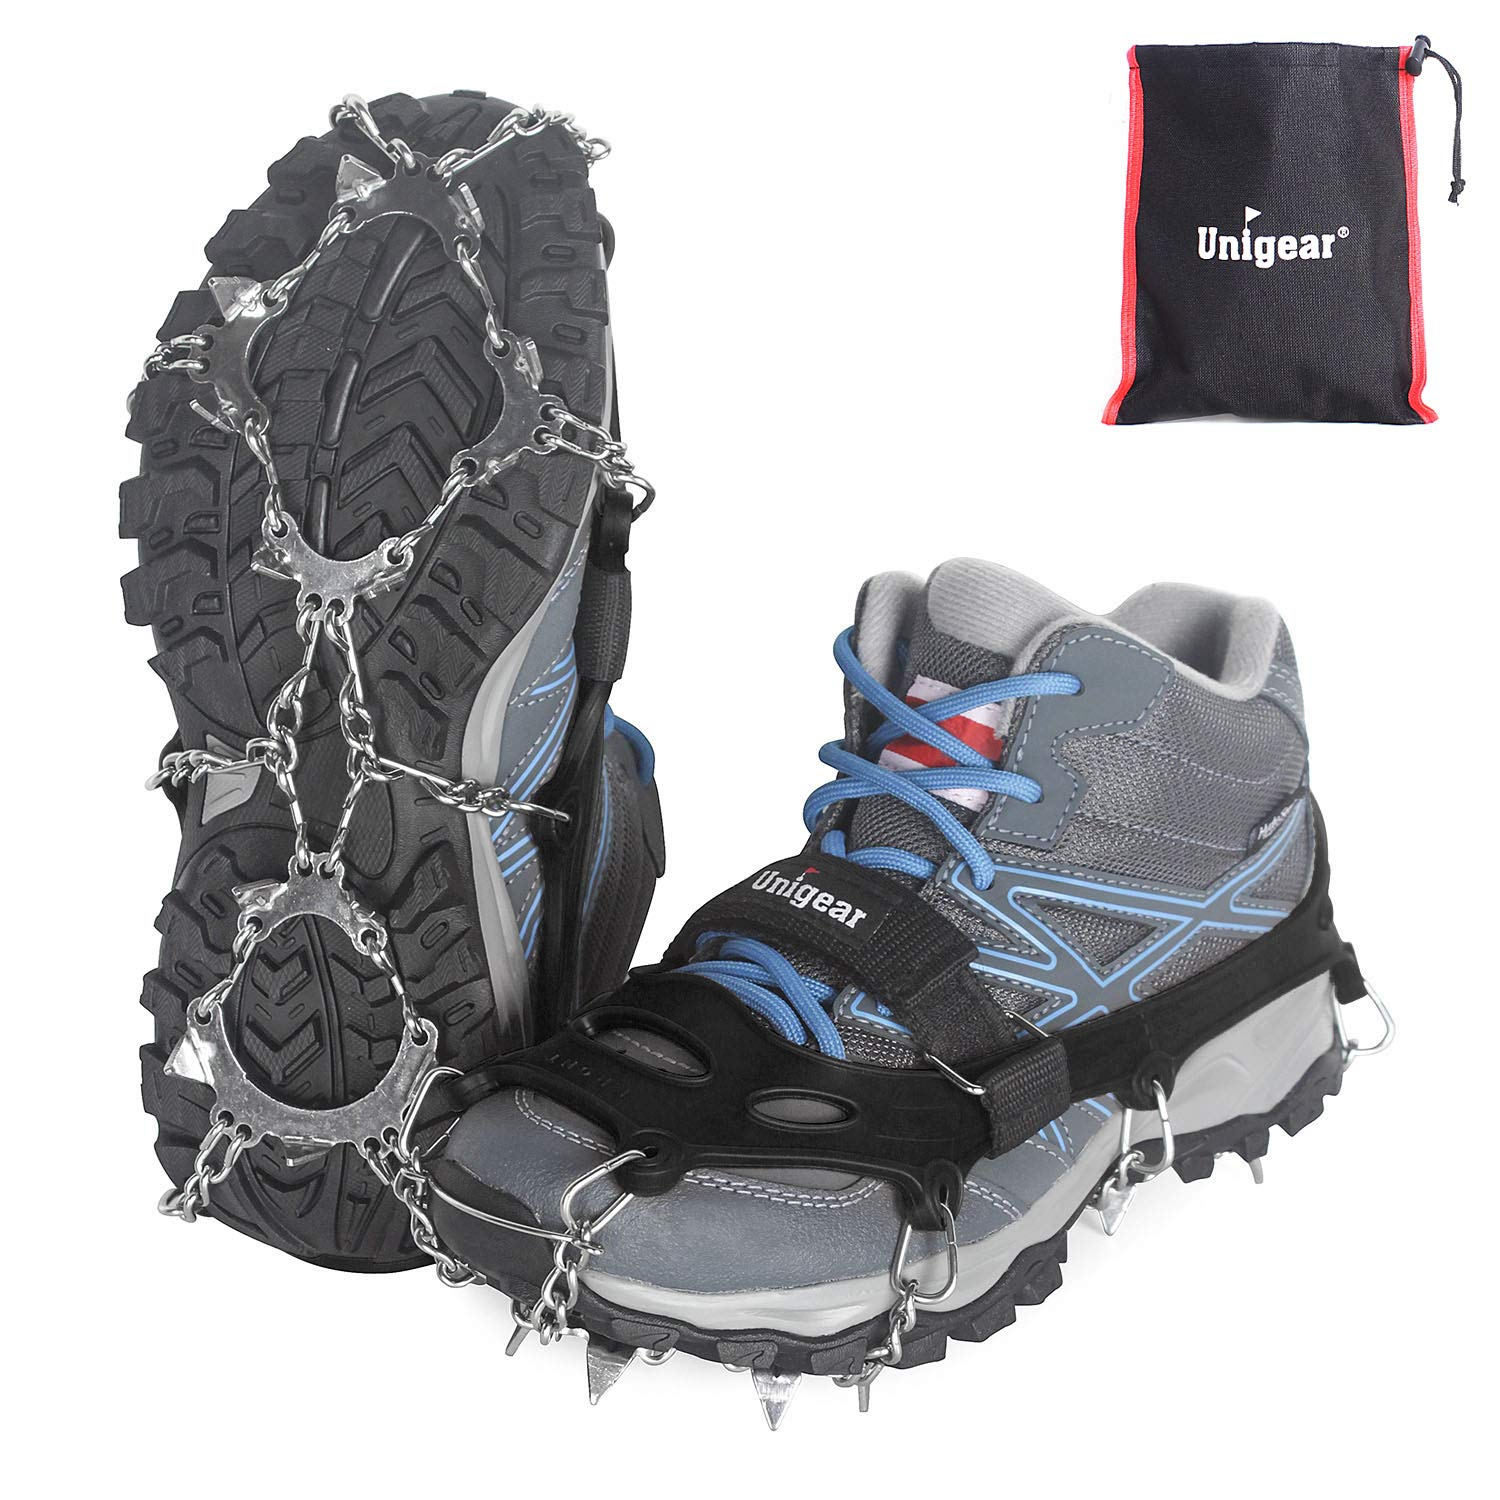 Unigear Traction Cleats Ice Snow Grips with 18 Spikes for Walking, Jogging, Climbing and Hiking (Black (13 Spikes), Small) by Unigear